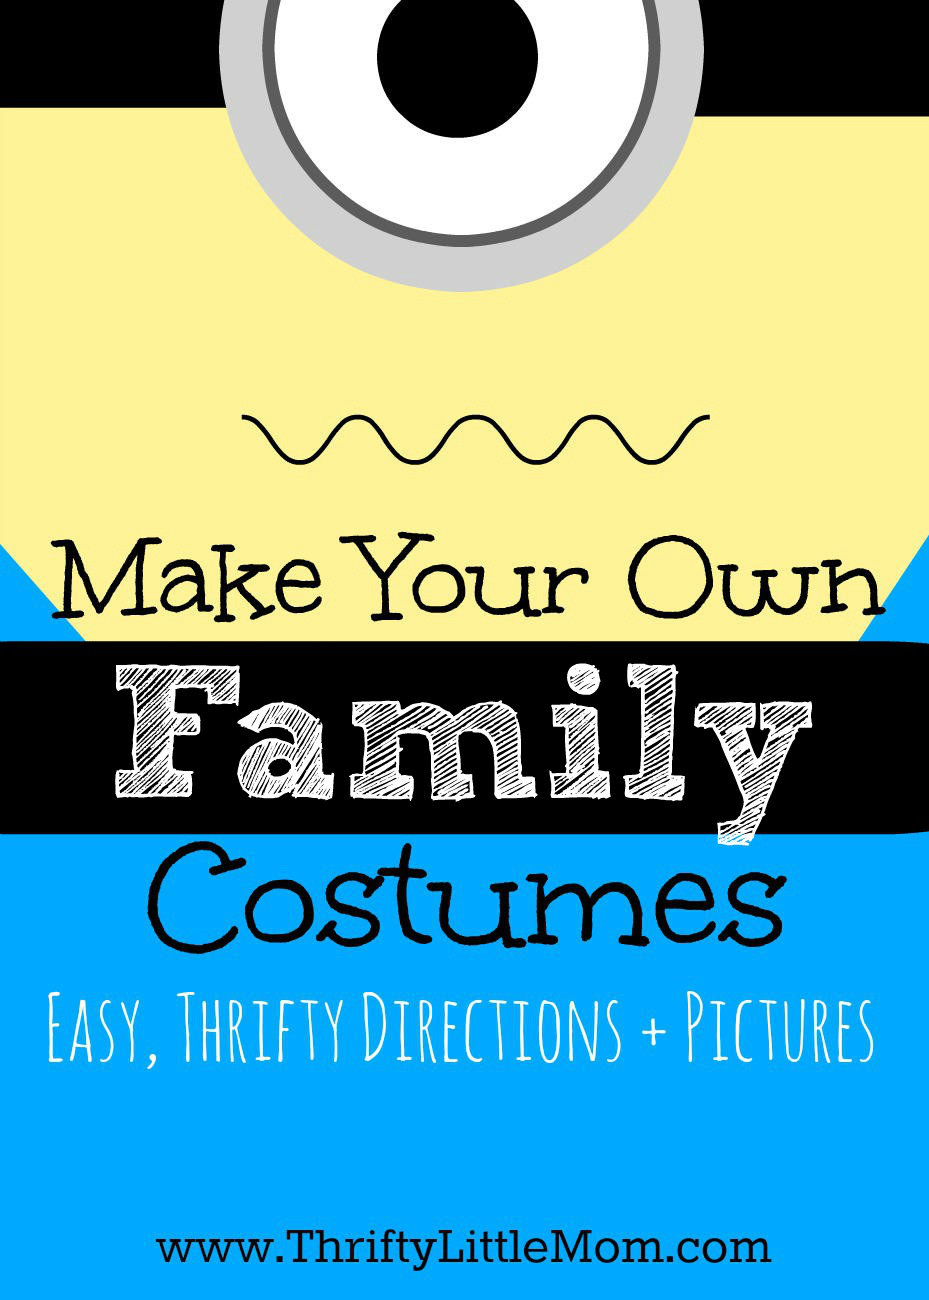 Make Your Own Family Costumes. This is a great, thrifty costume idea for families or individuals. The supplies are easy to find, inexpensive and some are even at your local thrift store!